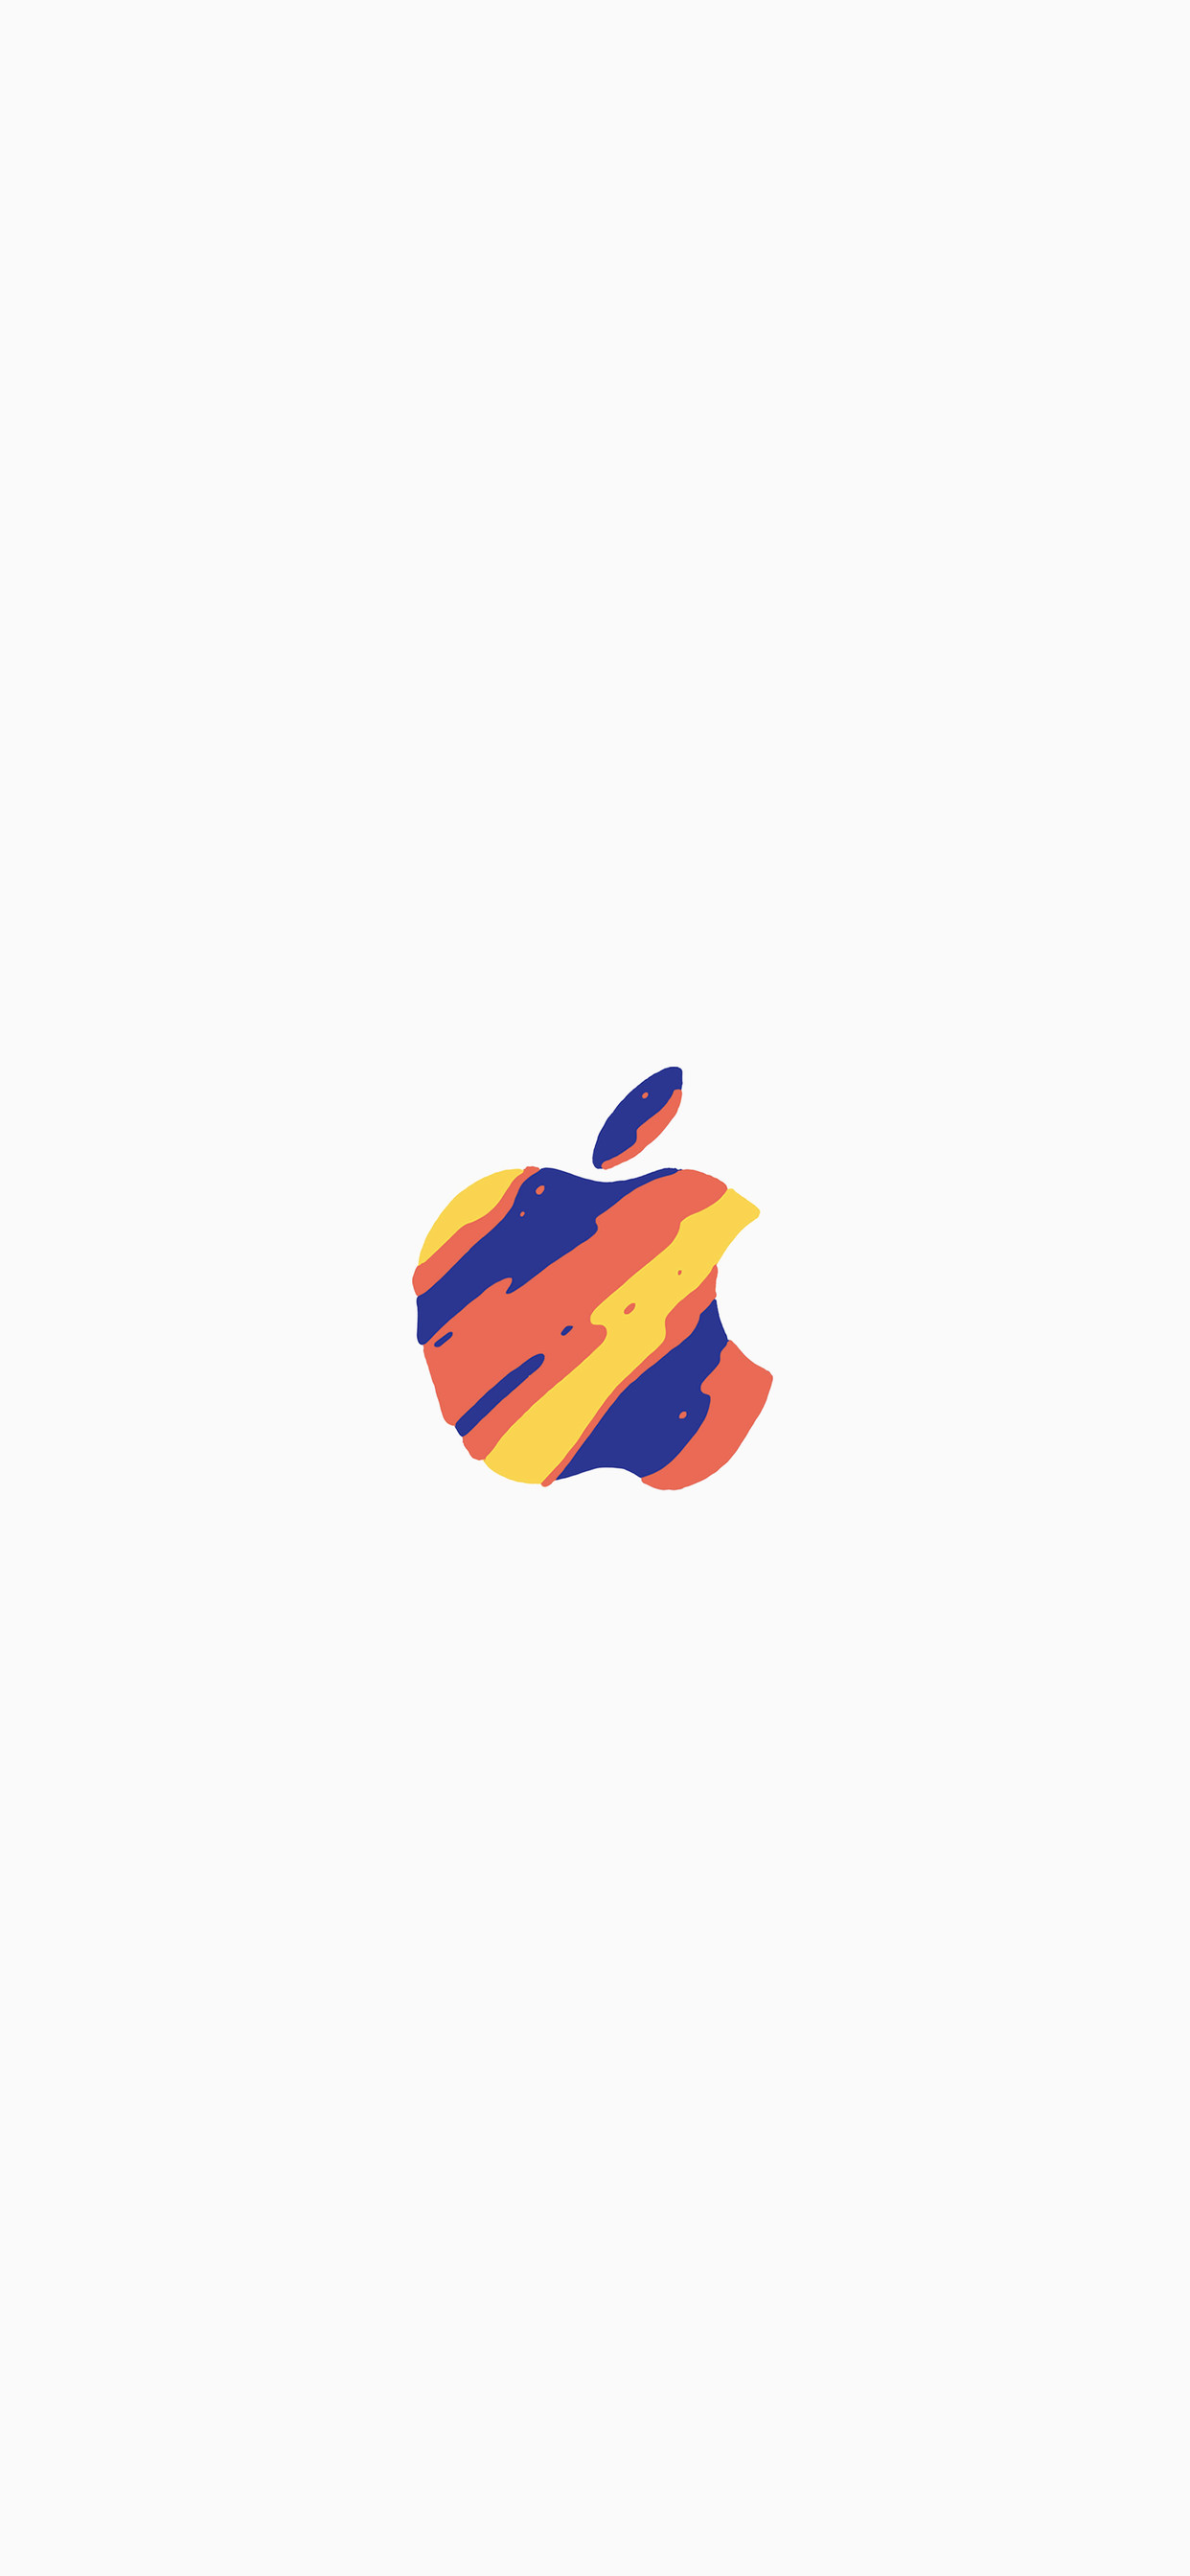 9 Apple logo